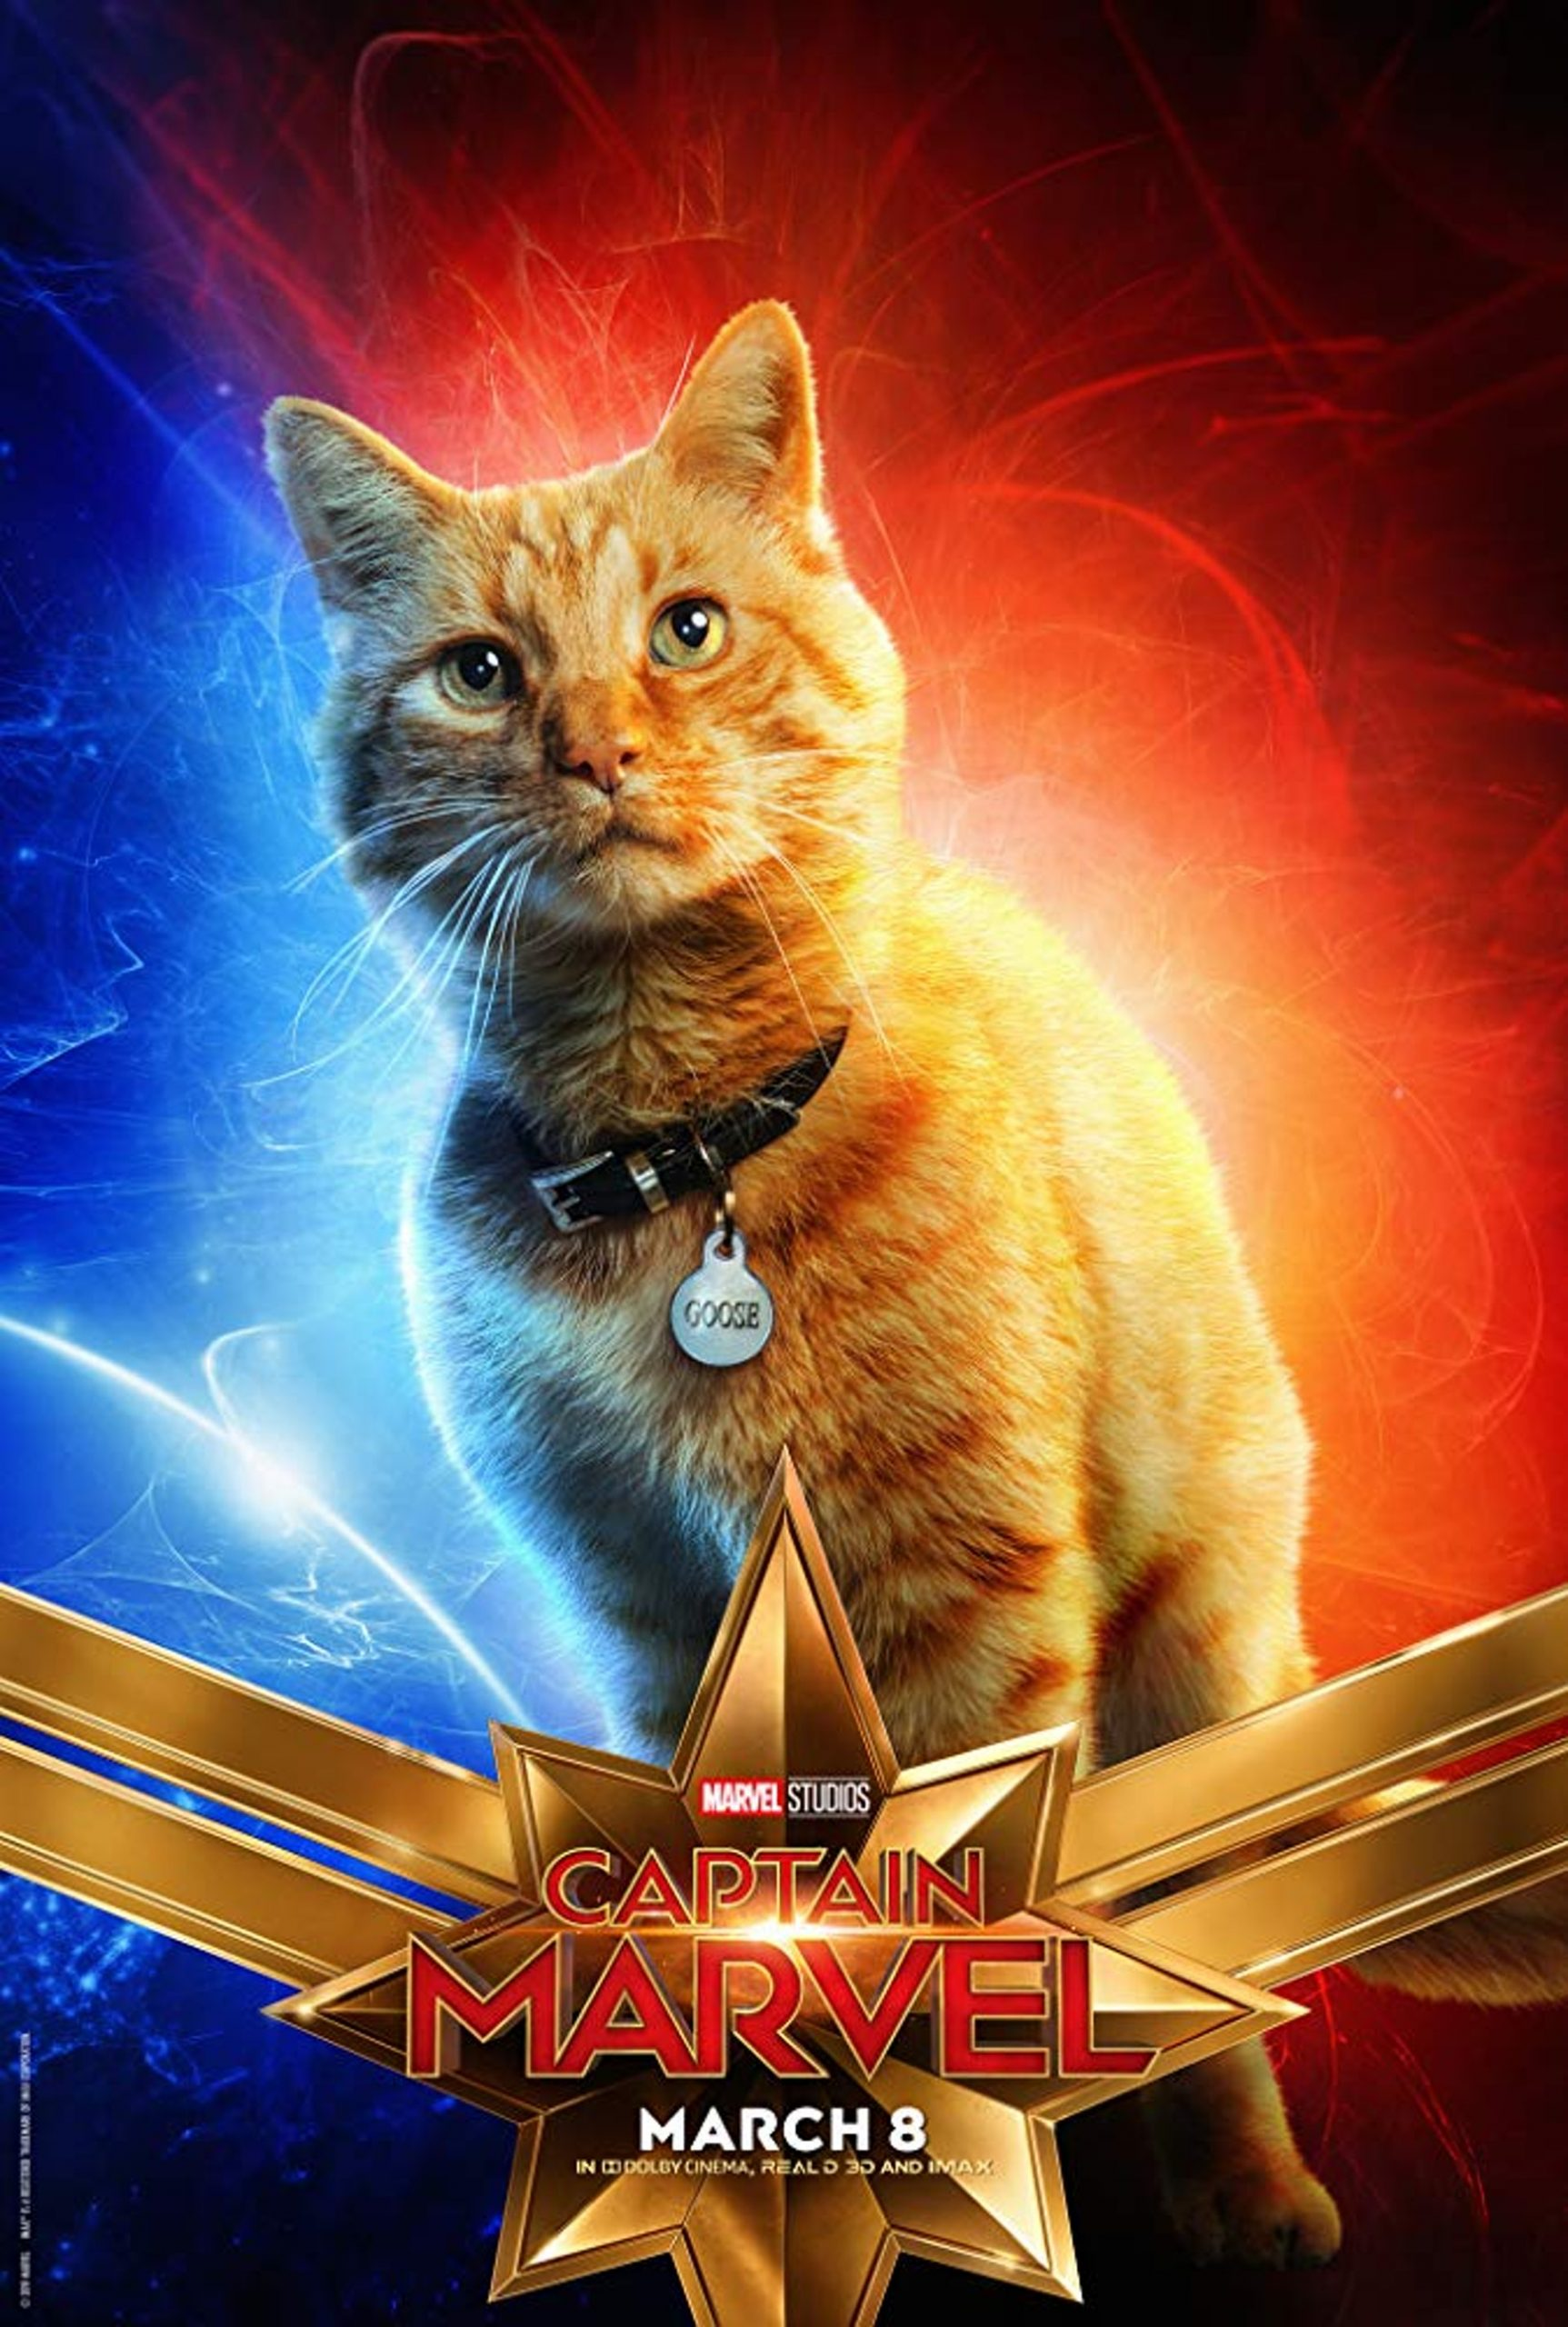 Goose the cat Captain Marvel Character Posters